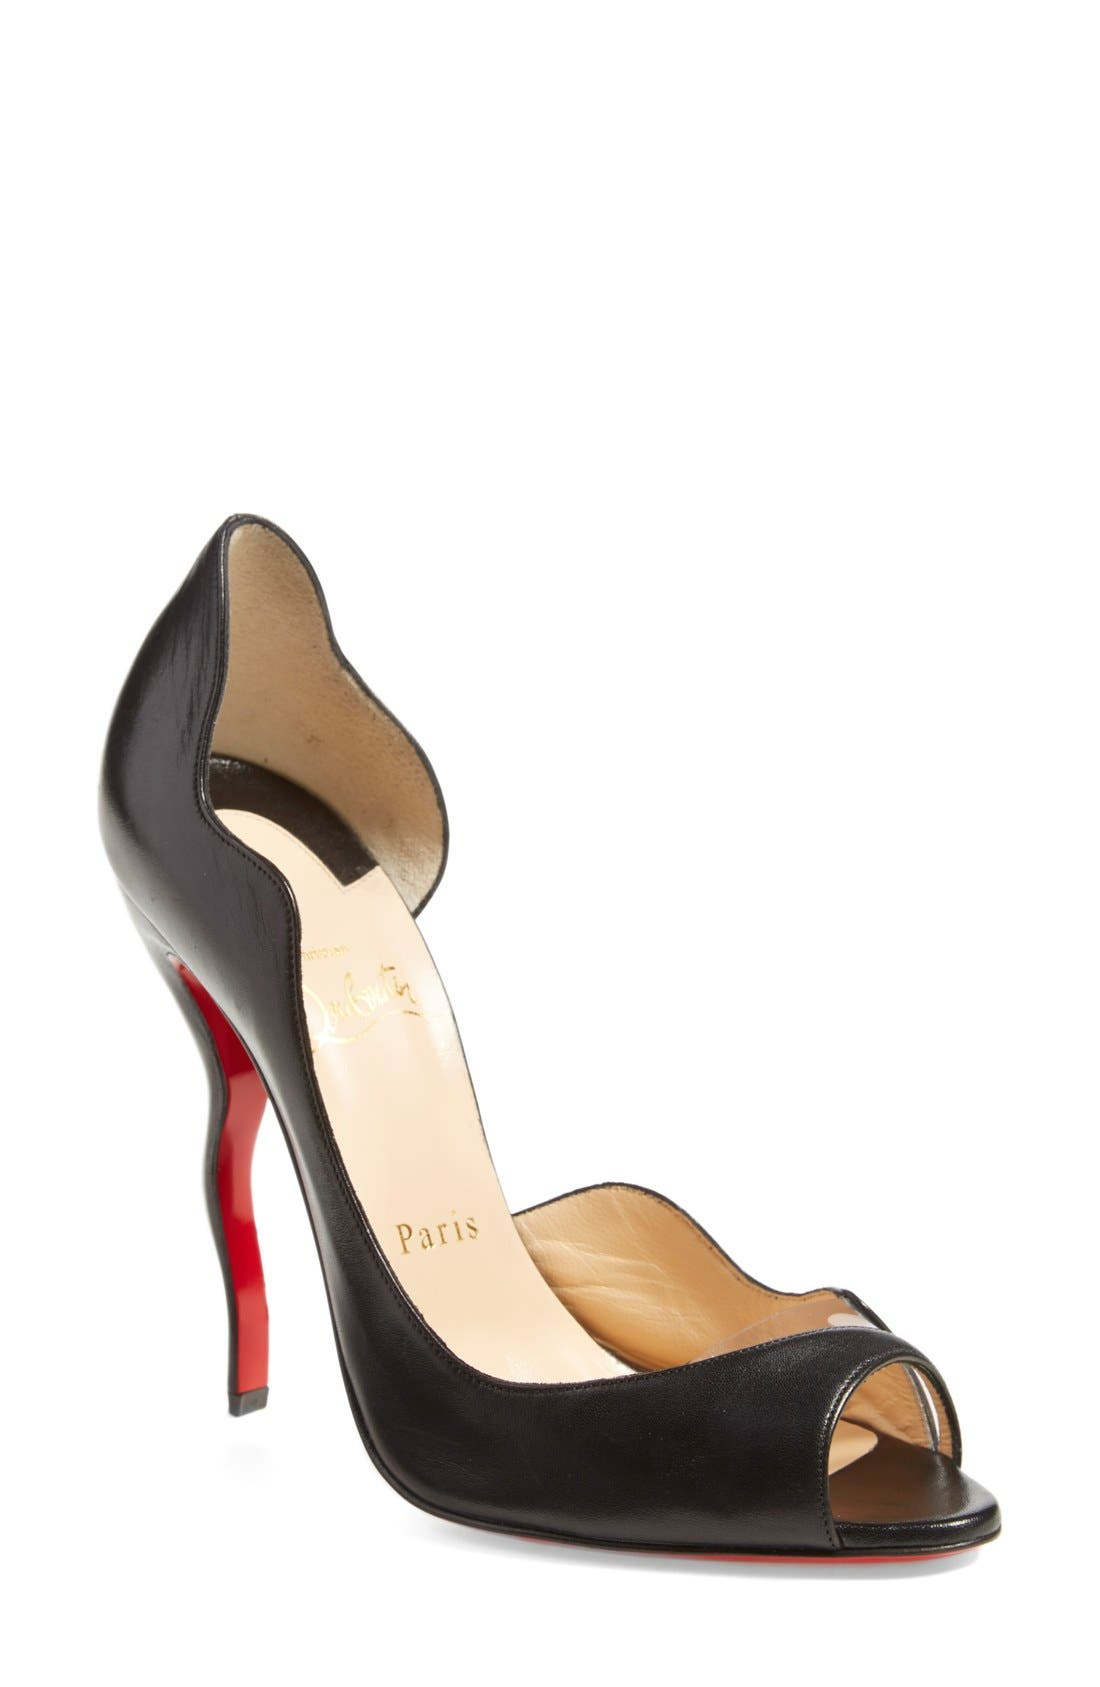 Alternate Image 1 Selected - Christian Louboutin 'Deepik' Half d'Orsay Pump